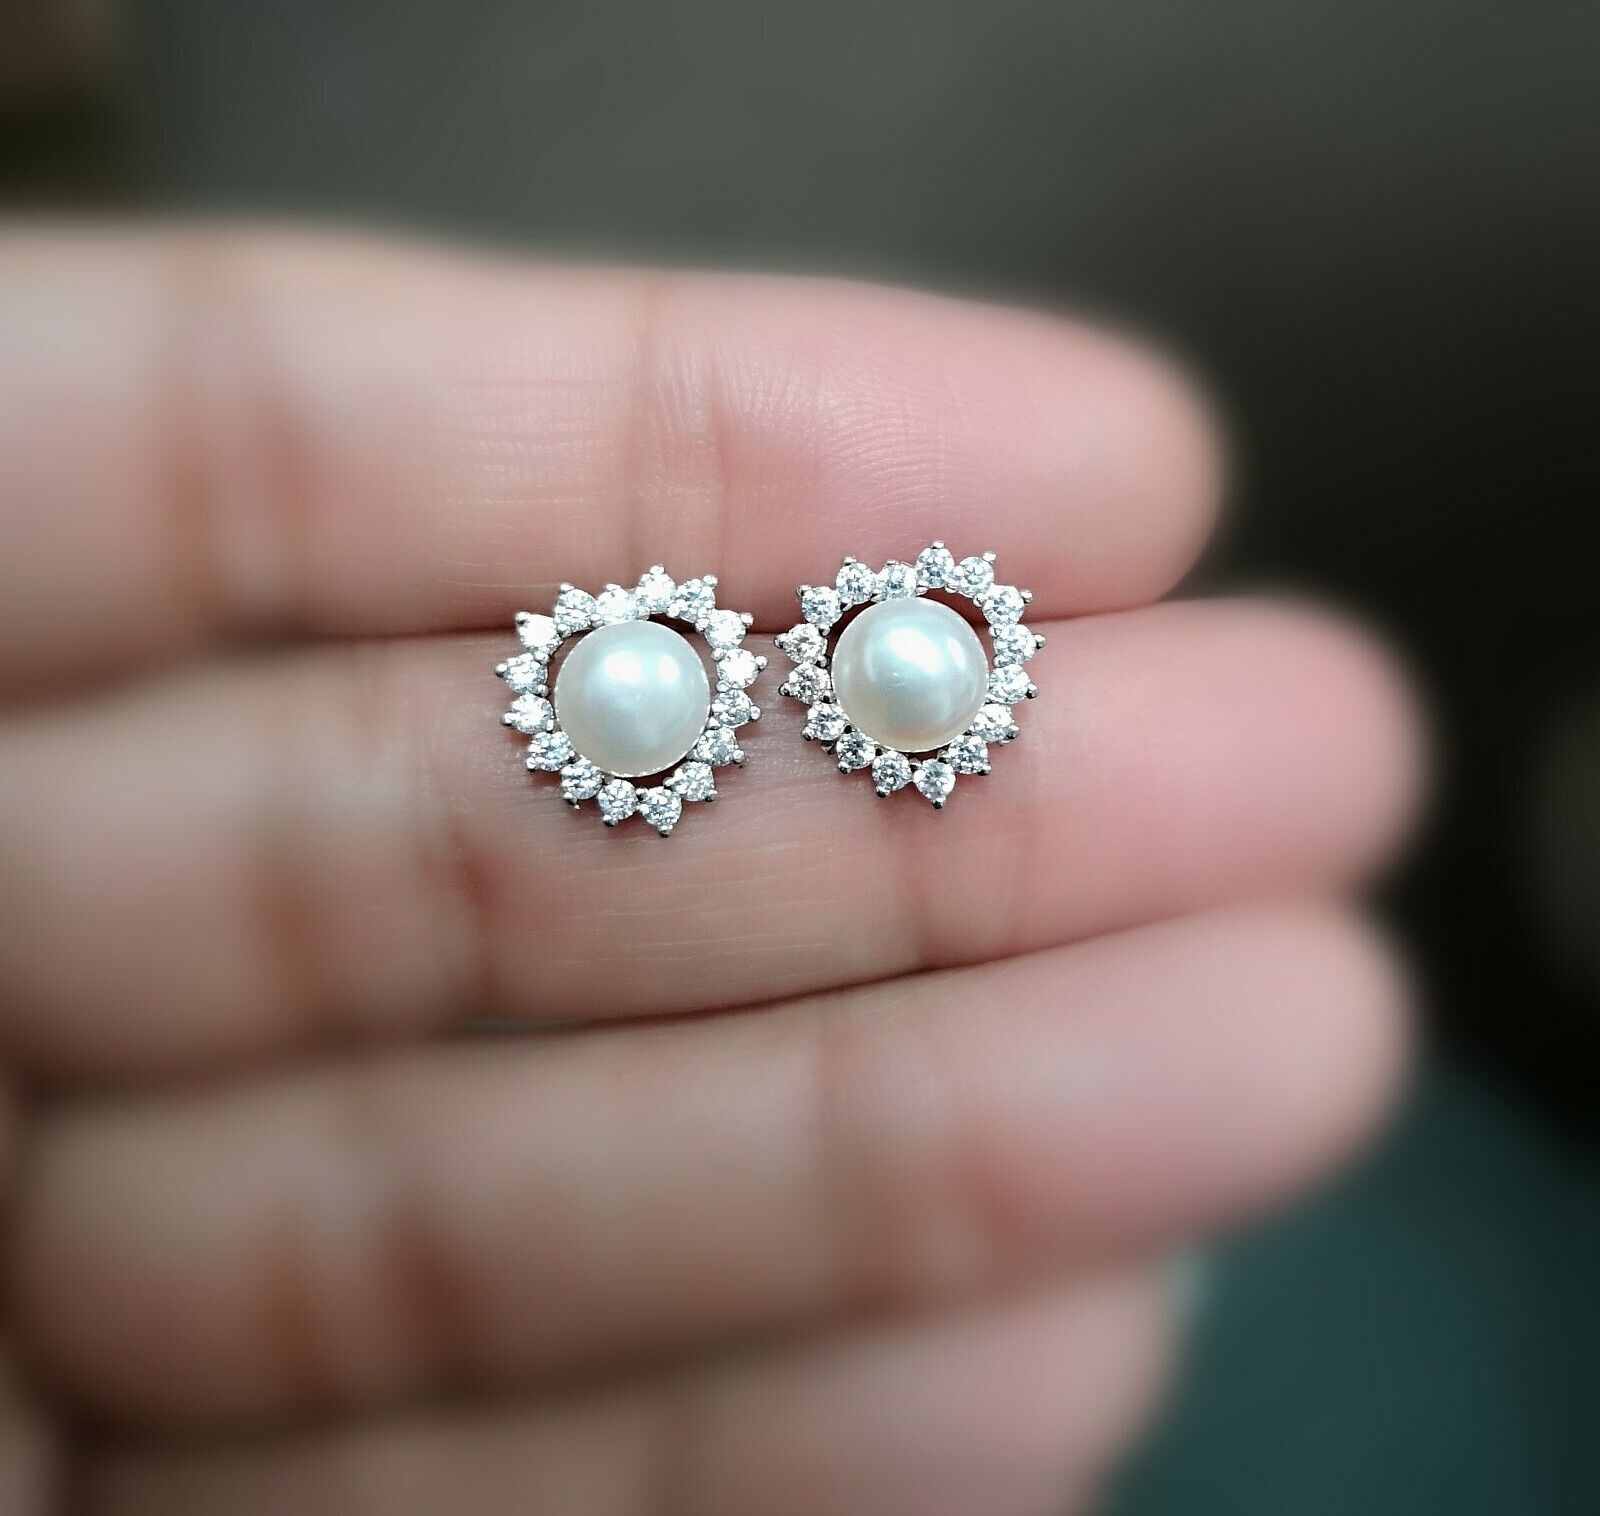 1Ct Diamond Earring with Pearl Womens Stud Earrings 14k White Gold over 1